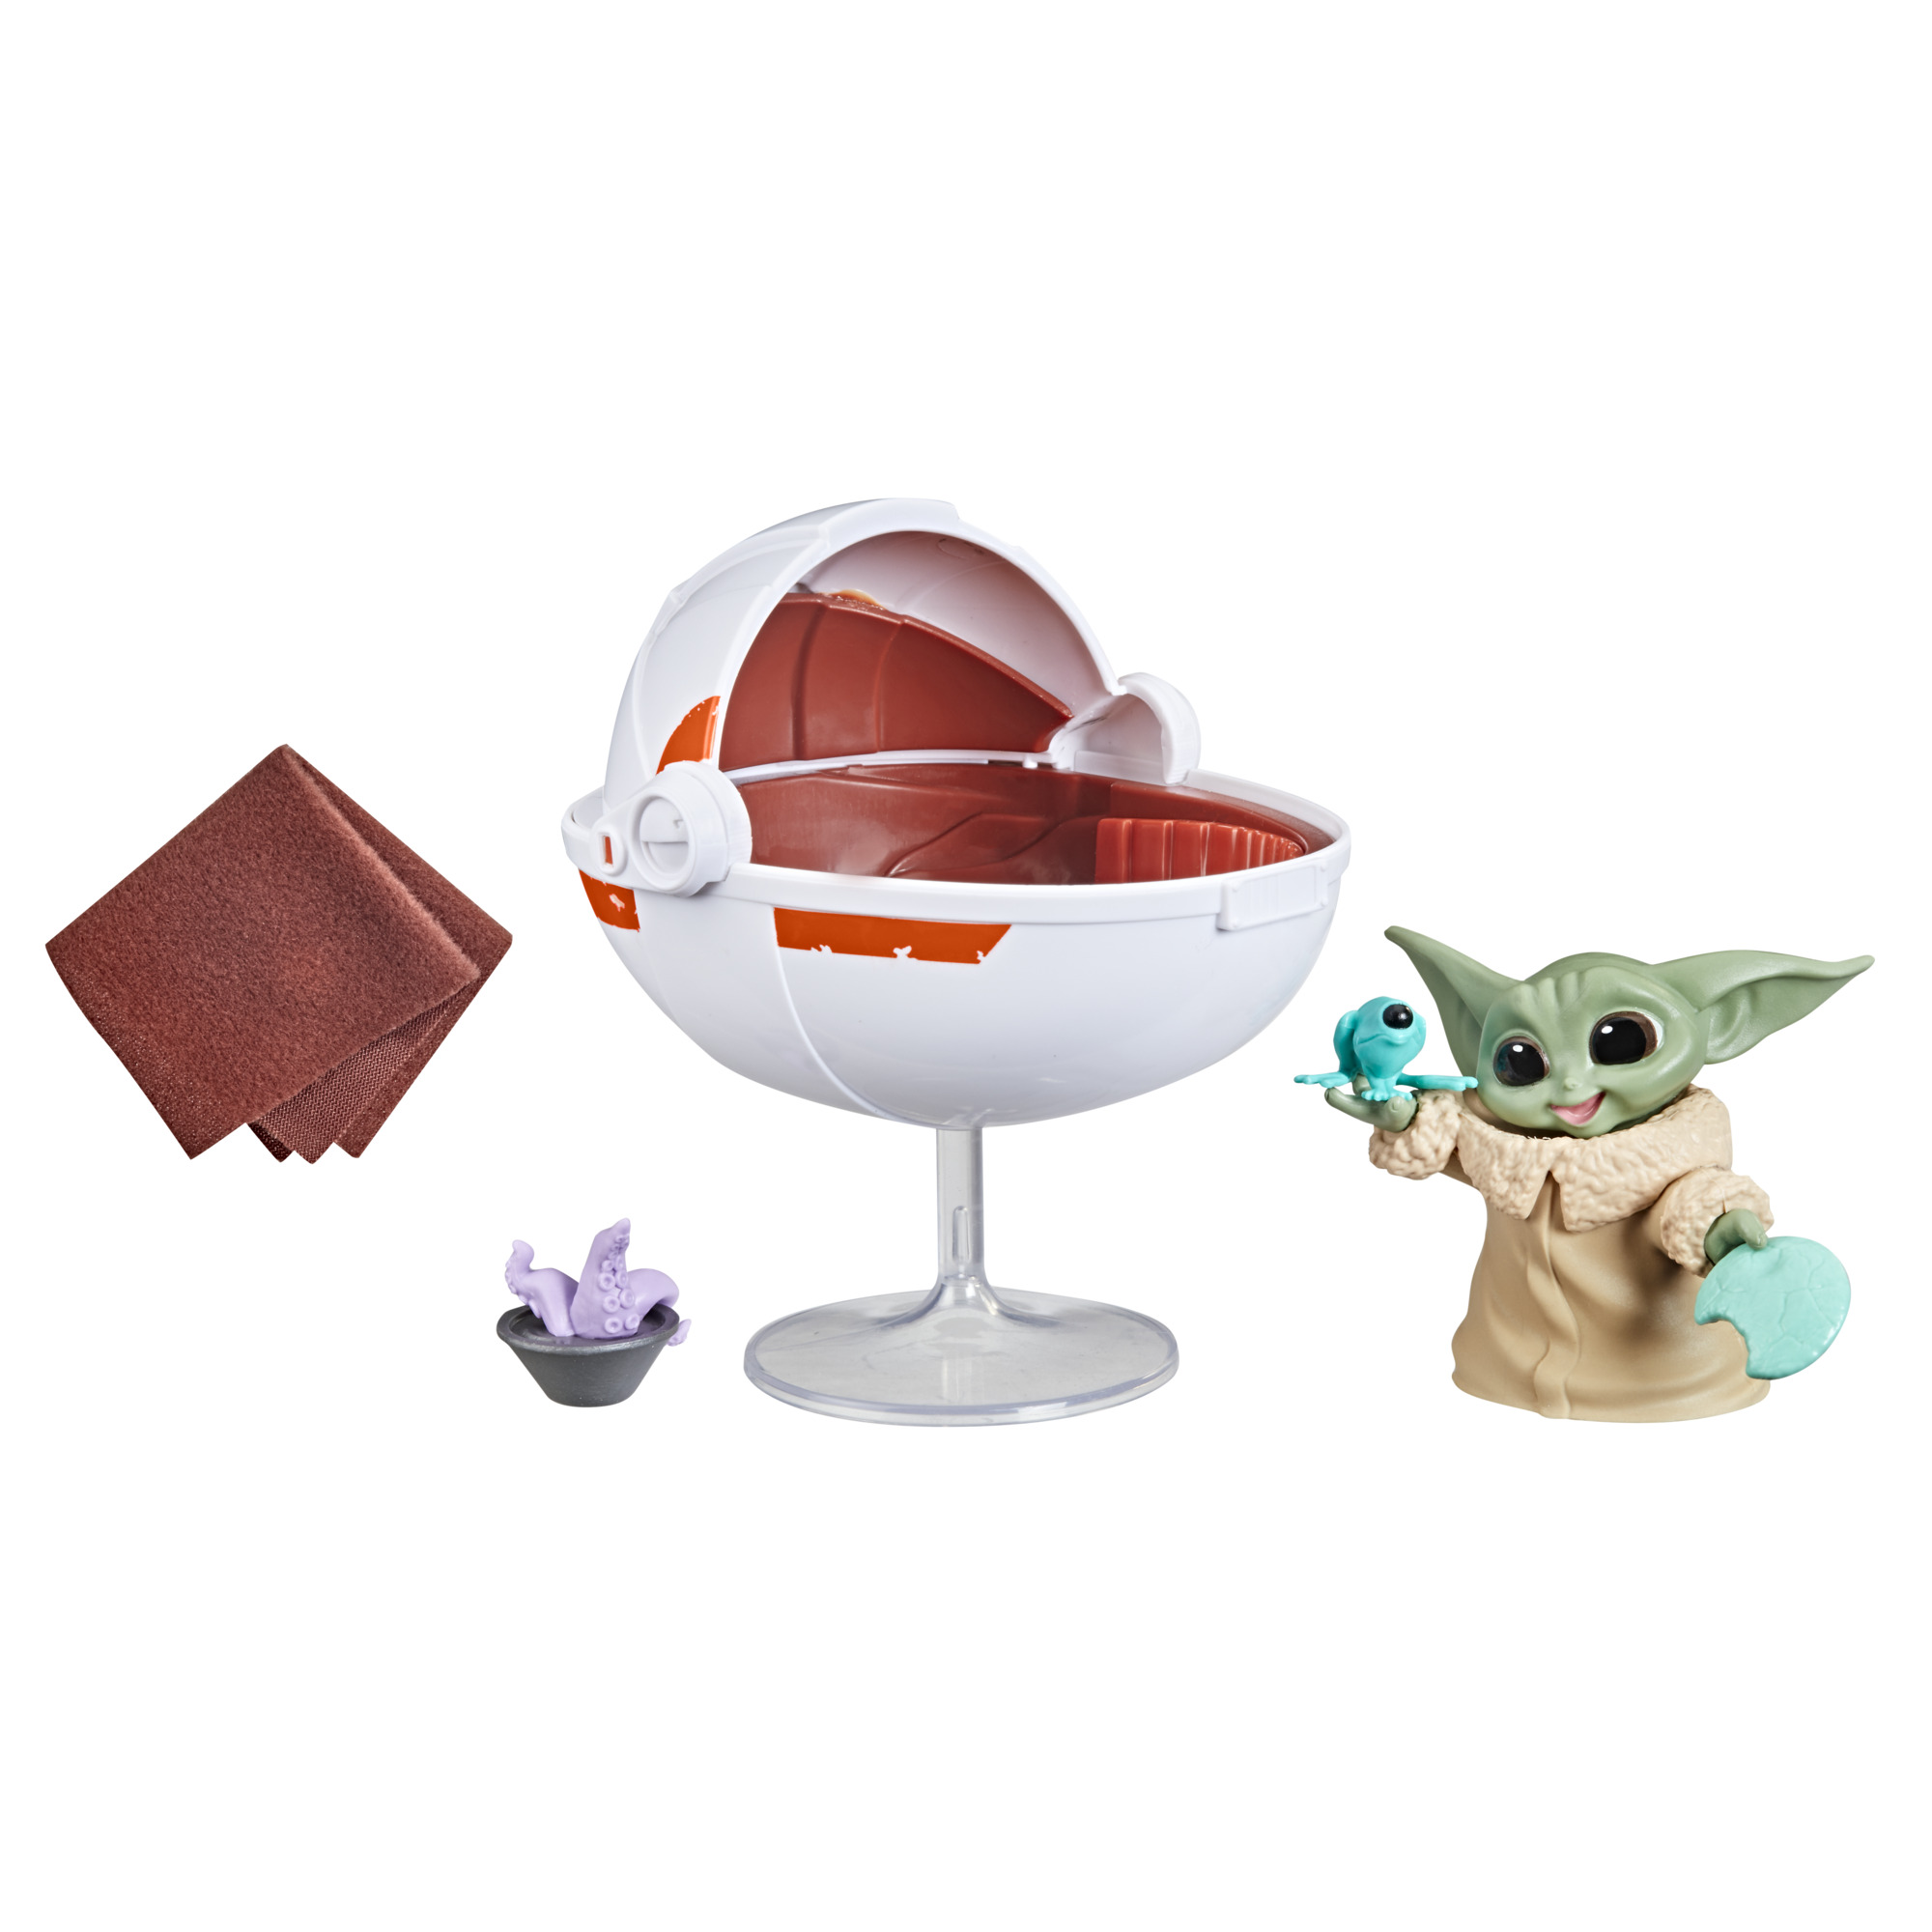 TM Grogu's Hover-Pram The Bounty Collection Figure Pack 2